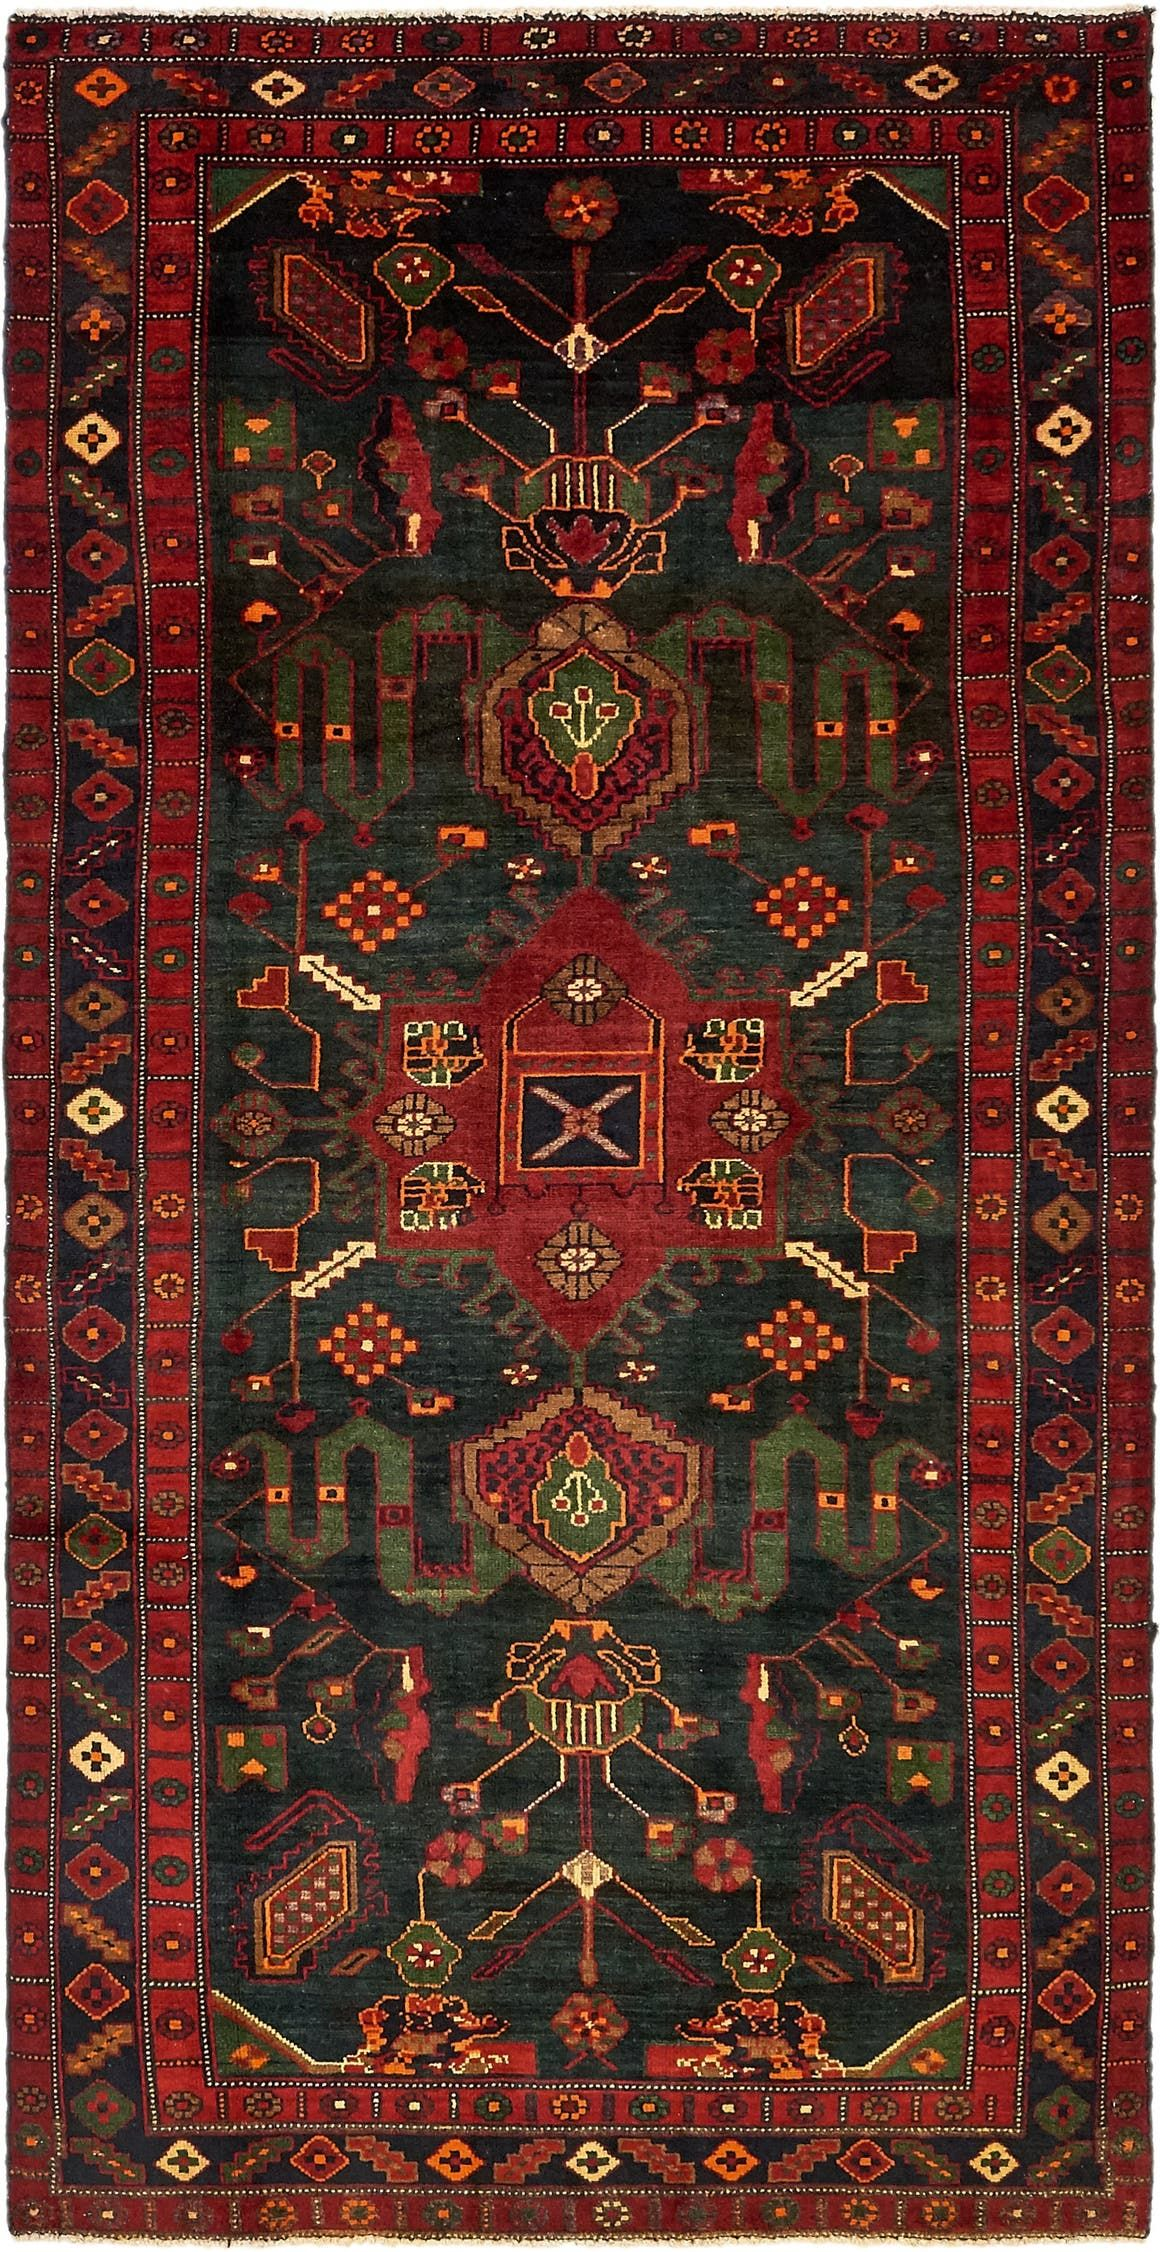 Koliaei Black Antique 10 Ft Runner Area Rug In 2020 Rugs Rug Runner Rugs On Carpet